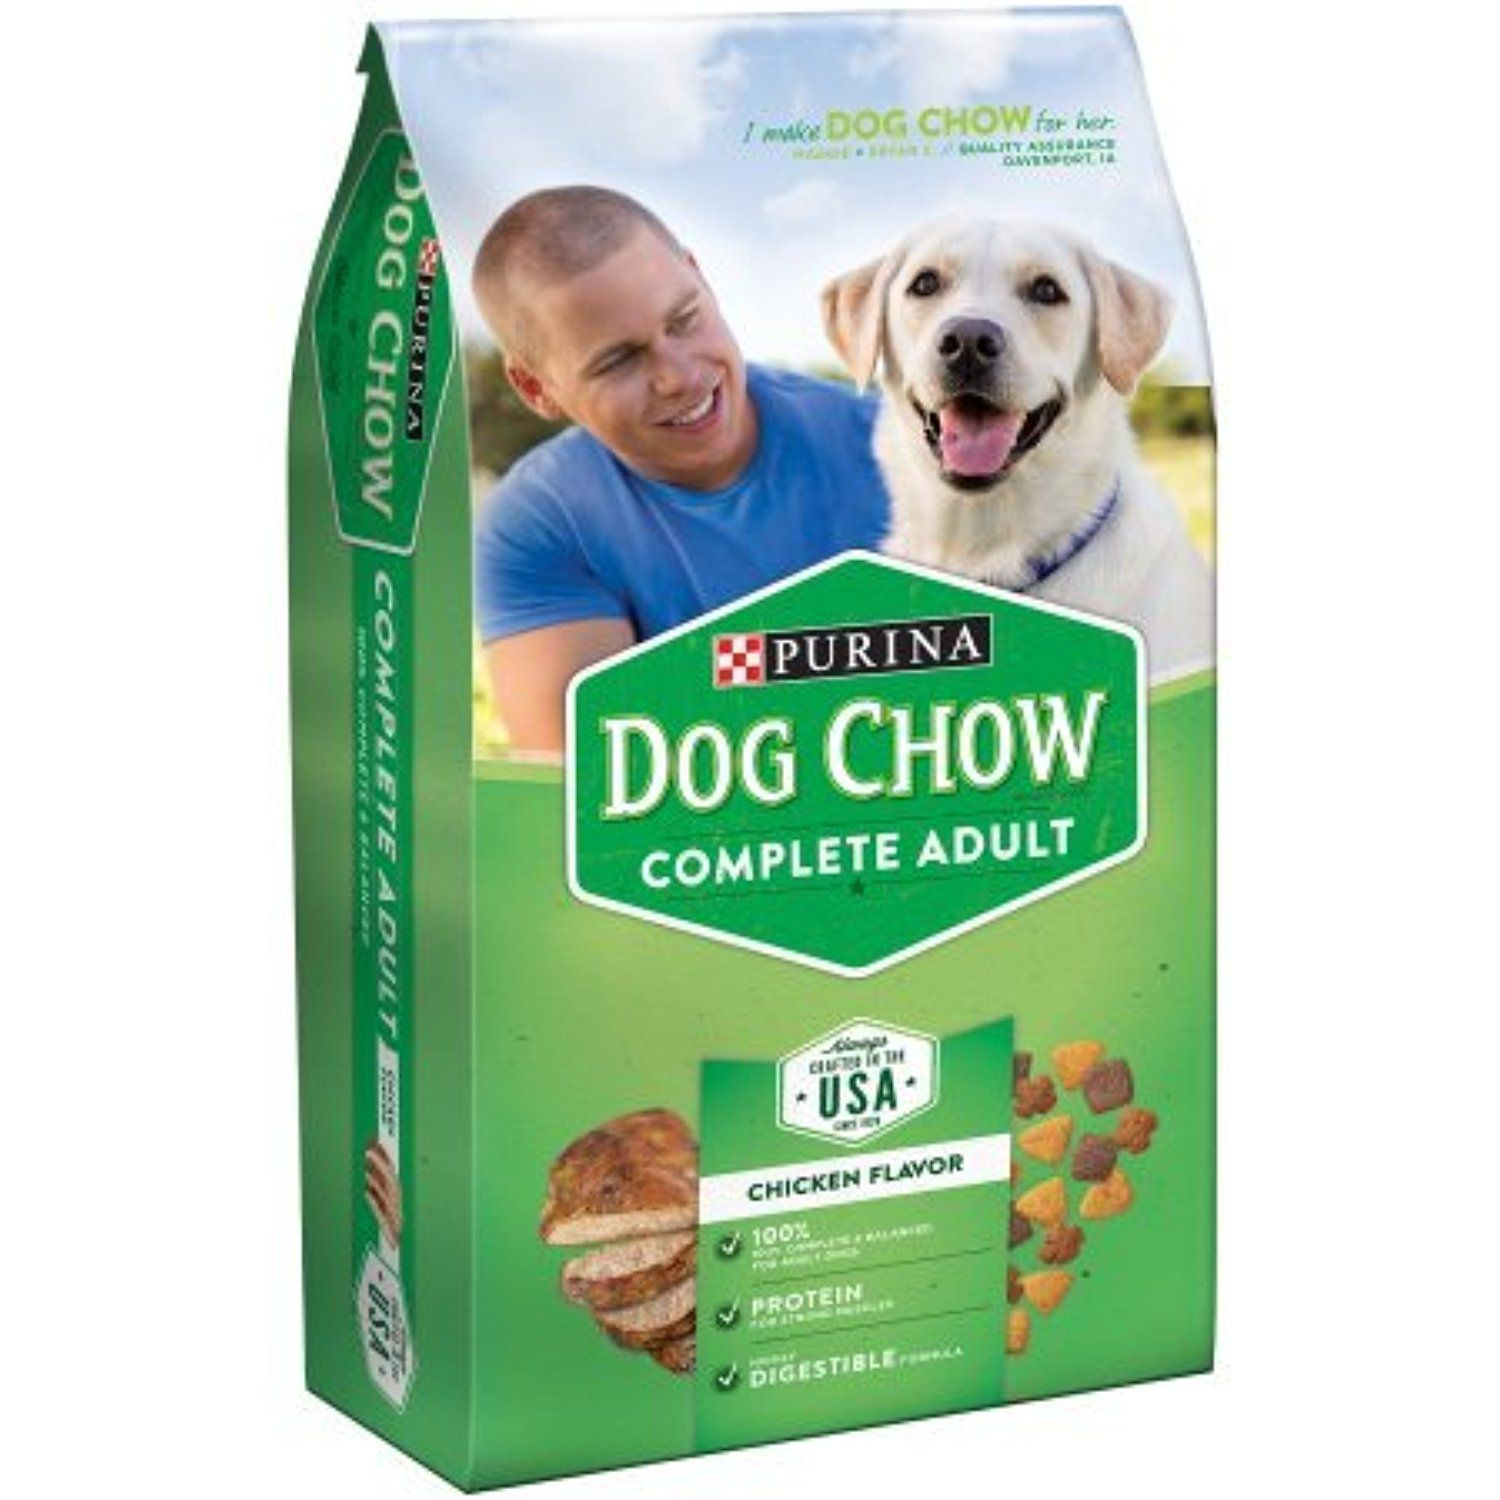 Purina Dog Chow Dry Dog Food Adult Complete 4 4 Pound Bag Pack